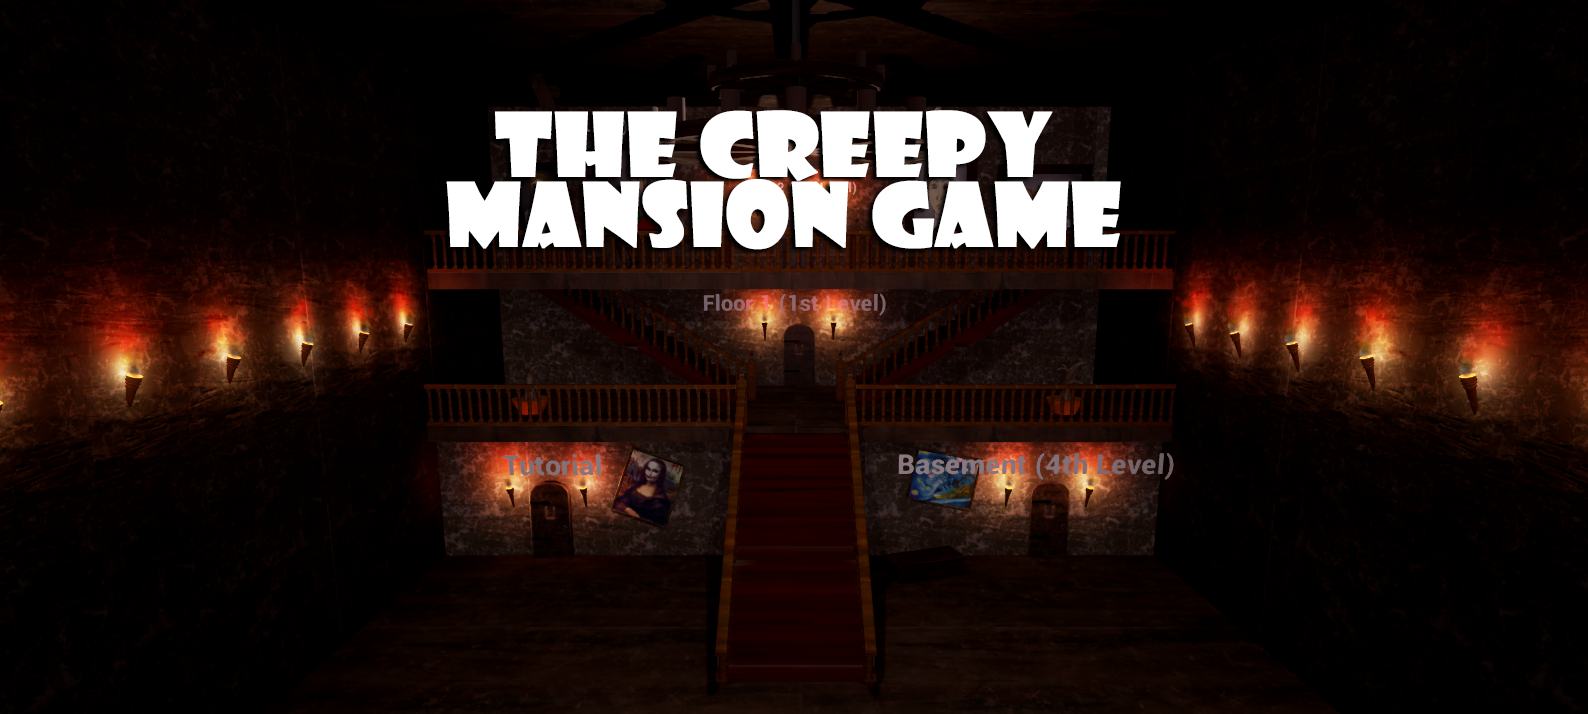 The Creepy Mansion Game